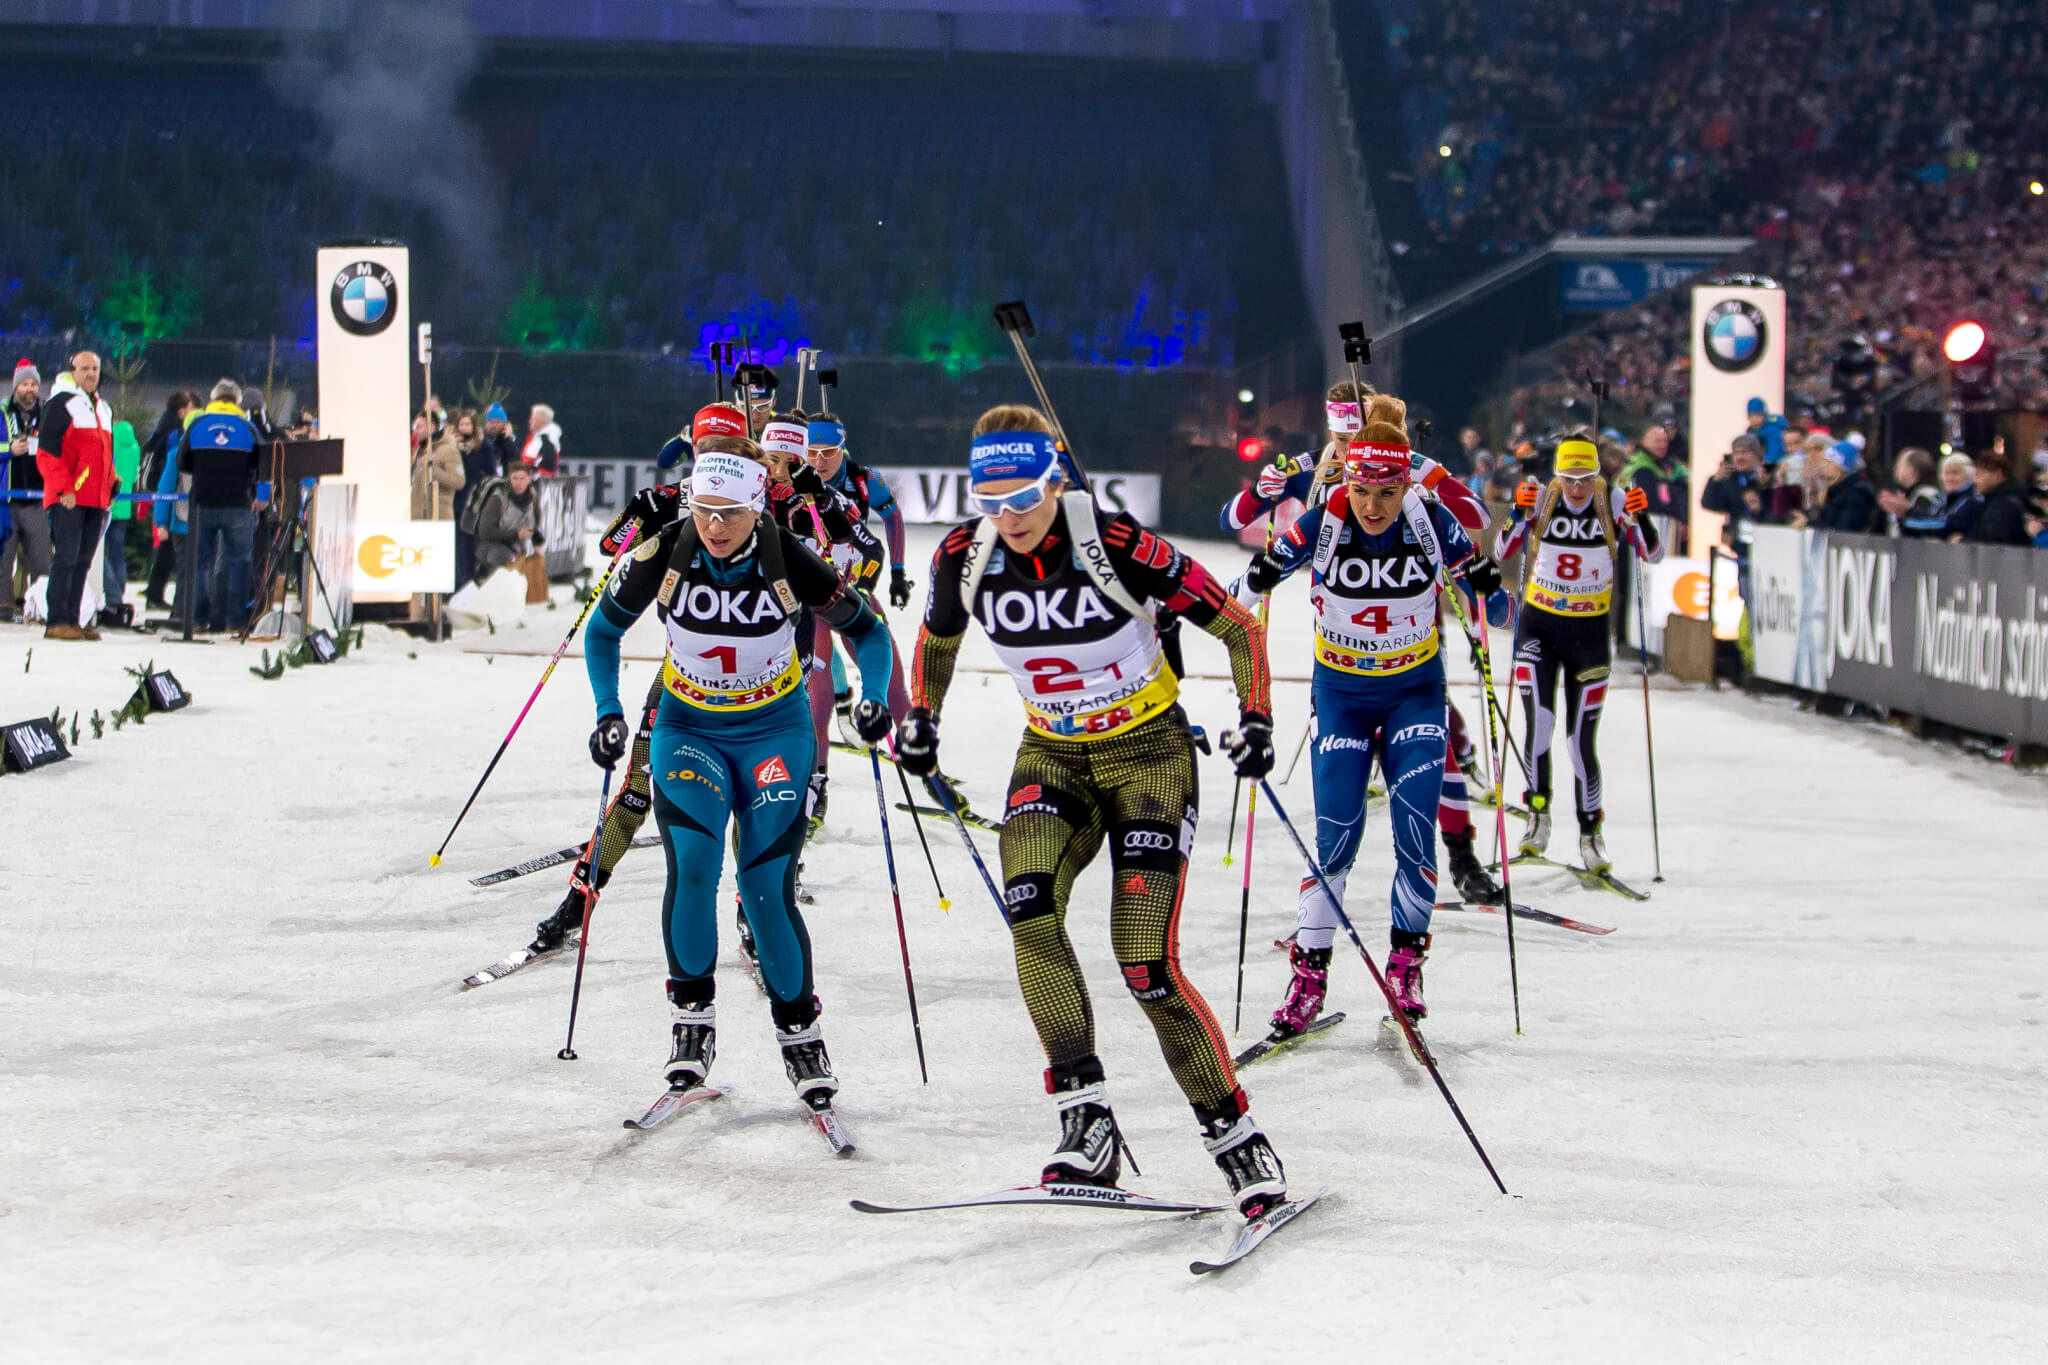 starterfeld beim biathlon auf schalke joka biathlon wtc 2017. Black Bedroom Furniture Sets. Home Design Ideas